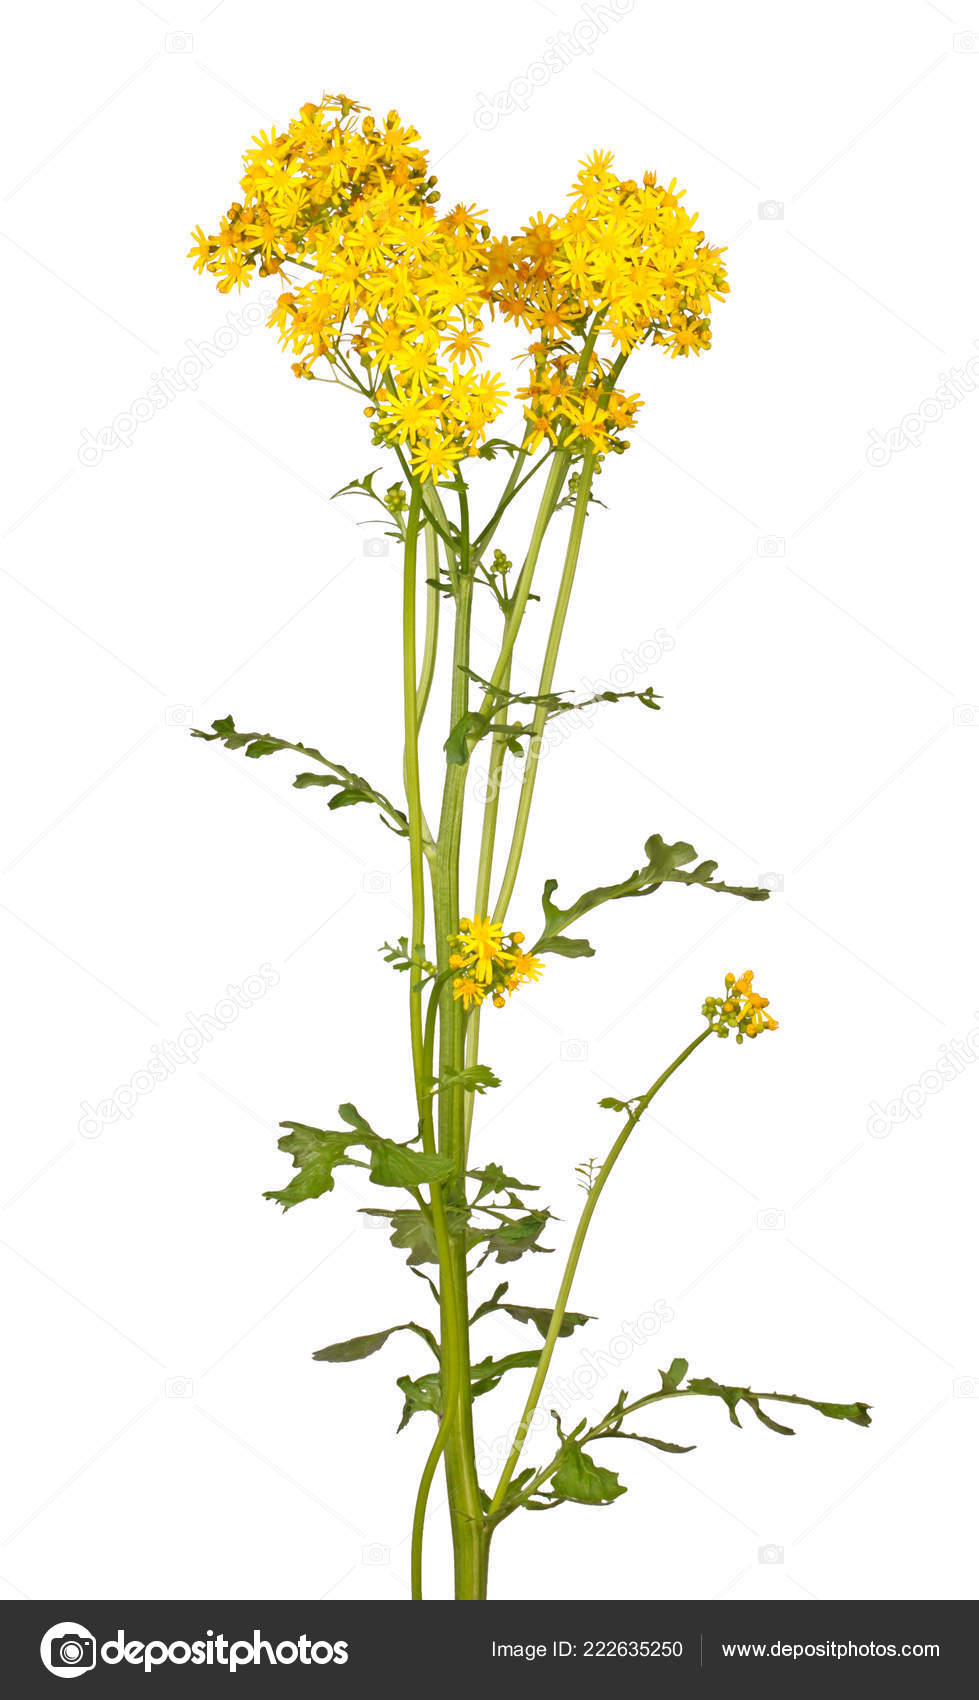 Fiori Gialli Gambo Lungo.Long Stem Bright Yellow Spring Flowers North American Native Weed